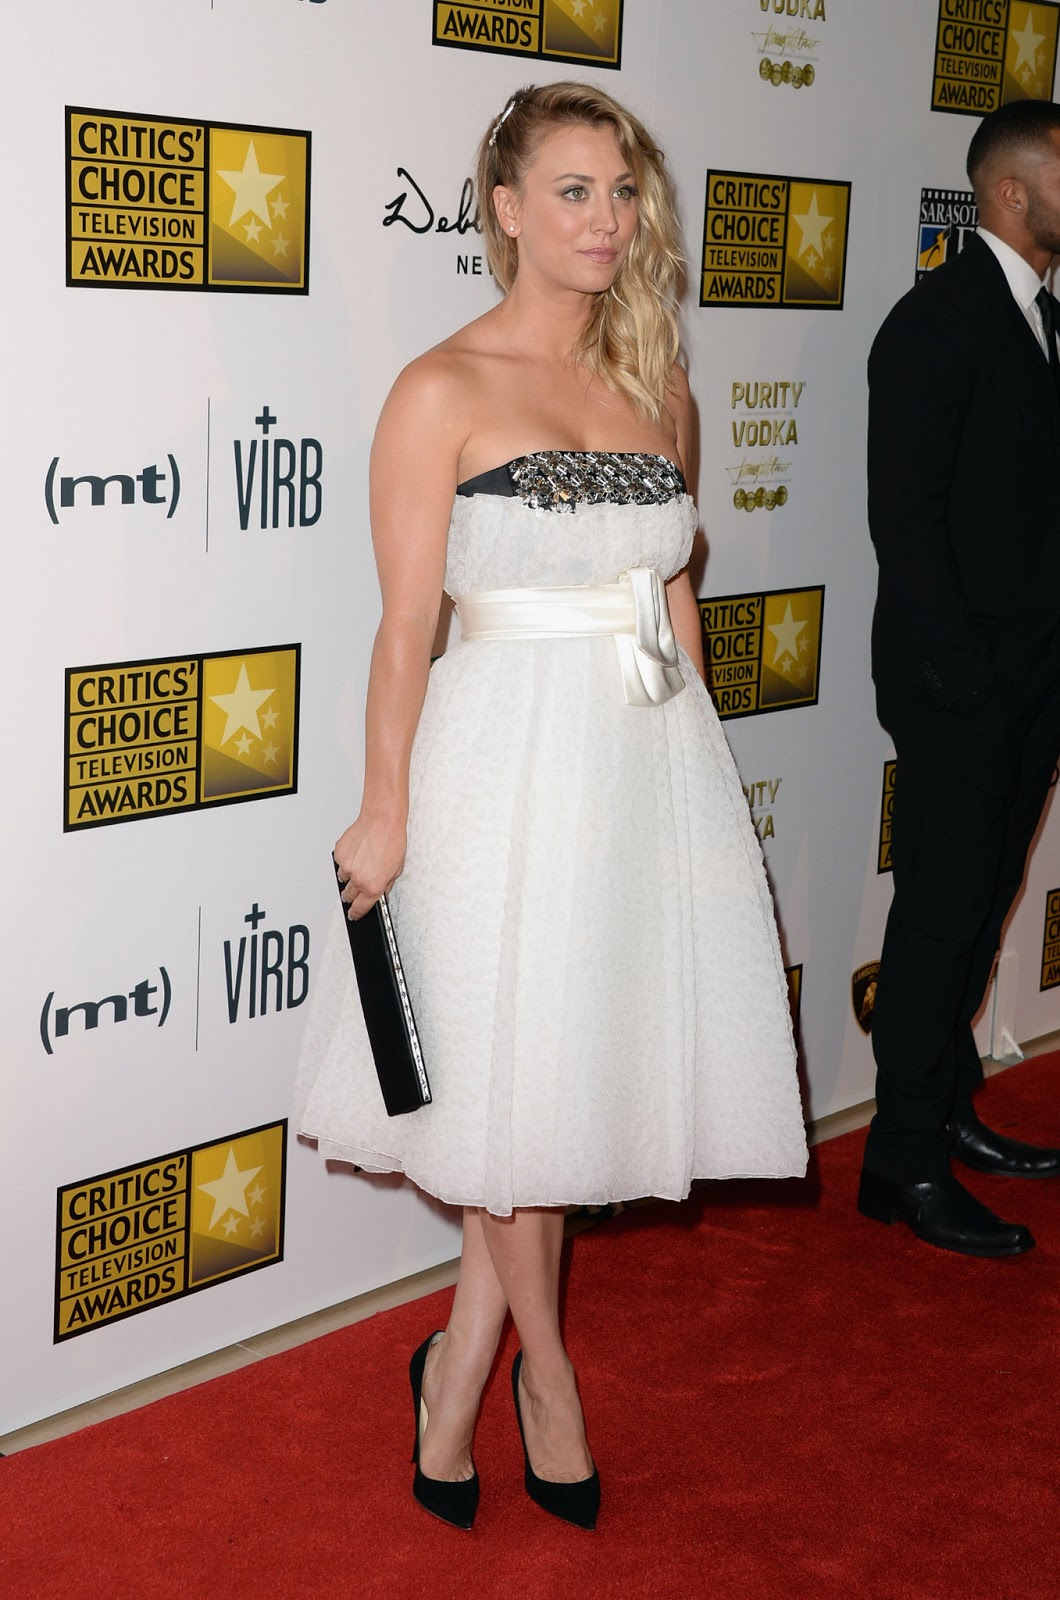 http://2.bp.blogspot.com/-Rsb0gip3UvE/UbccW0sXa2I/AAAAAAAAgqA/-GUdbaro13E/s1600/Kaley+Cuoco+-+3rd+Annual+Critics%27+Choice+Television+Awards+red+carpet+-+June+10,+2013+-05.jpg